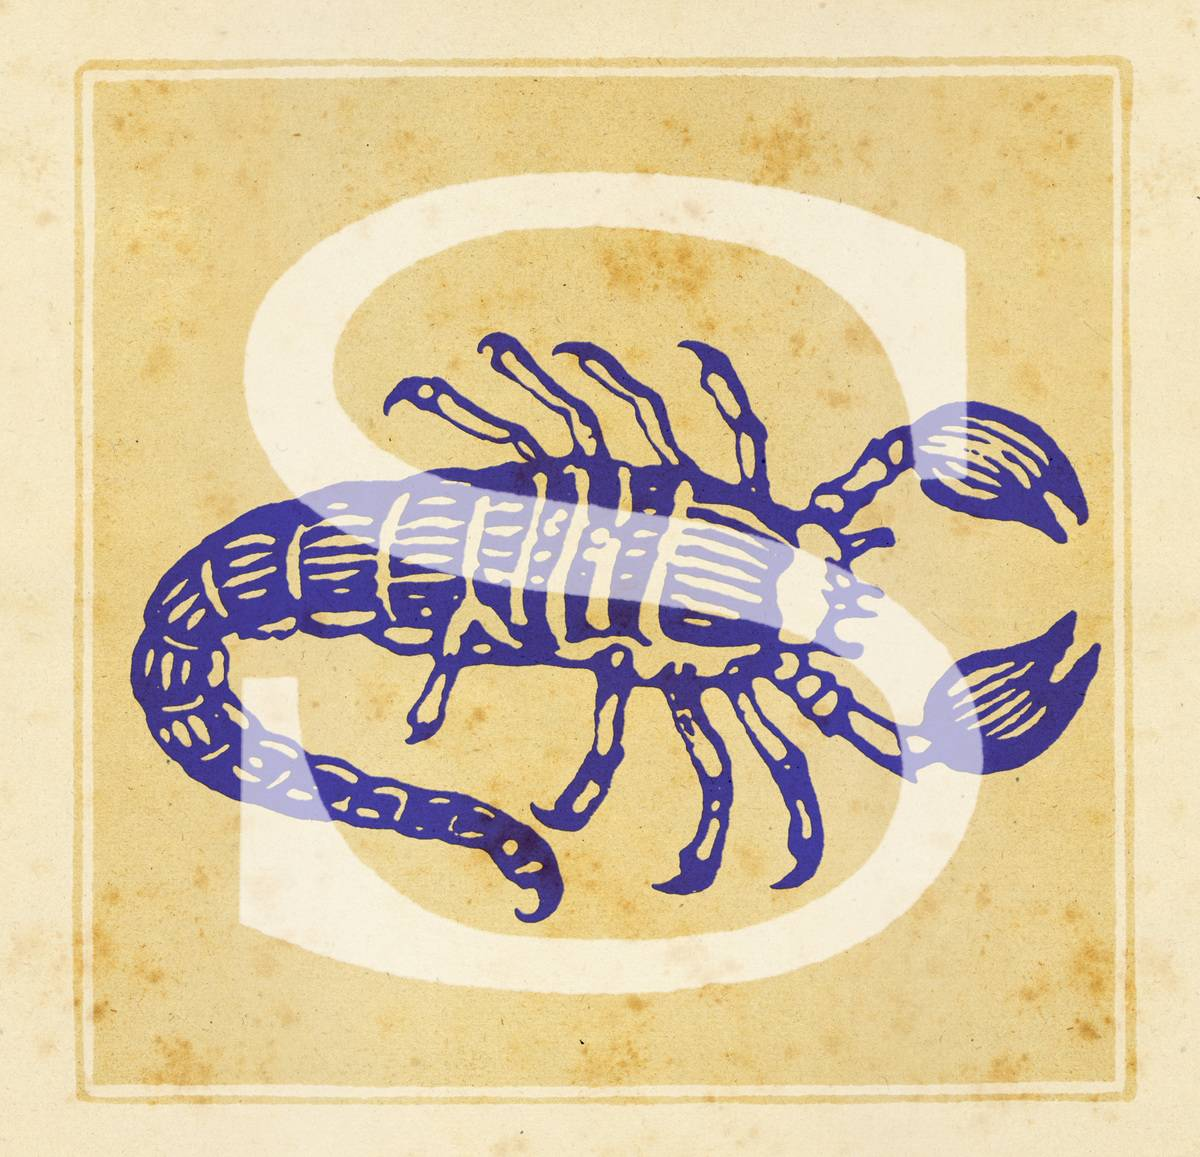 Capital letter S with zodiac sign of Scorpio - a scorpion